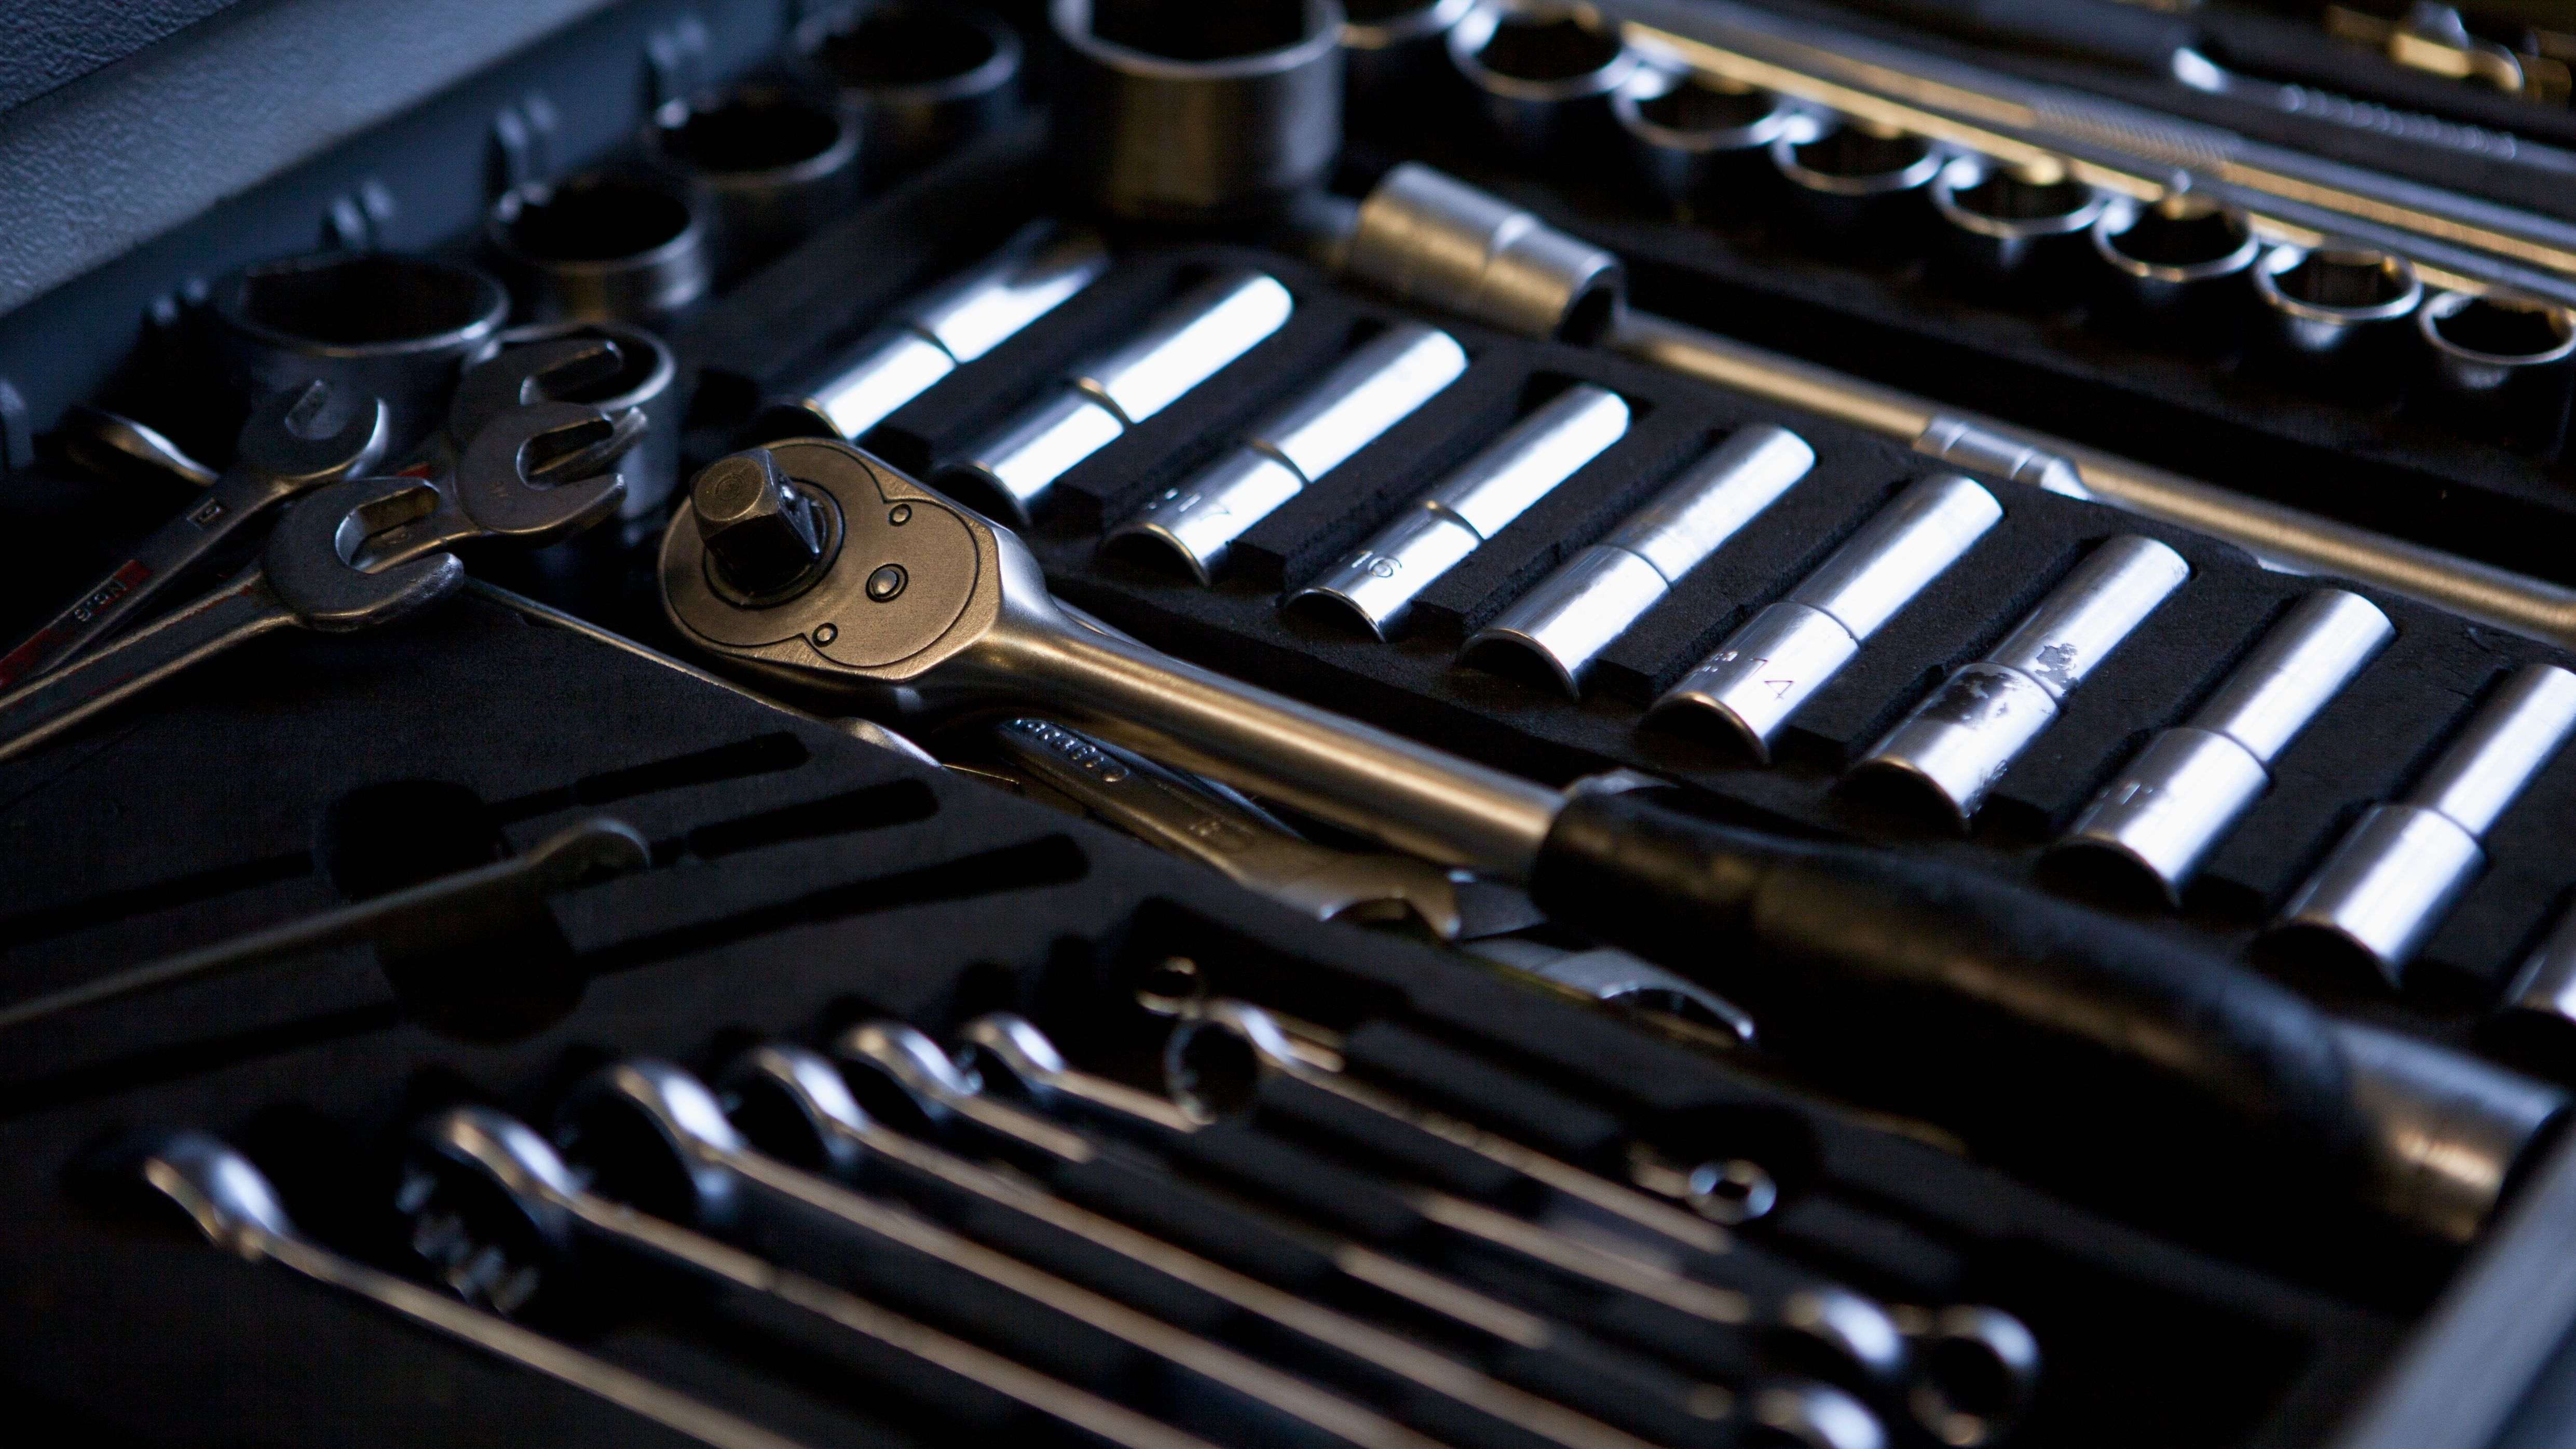 Spanner and socket set buying guide